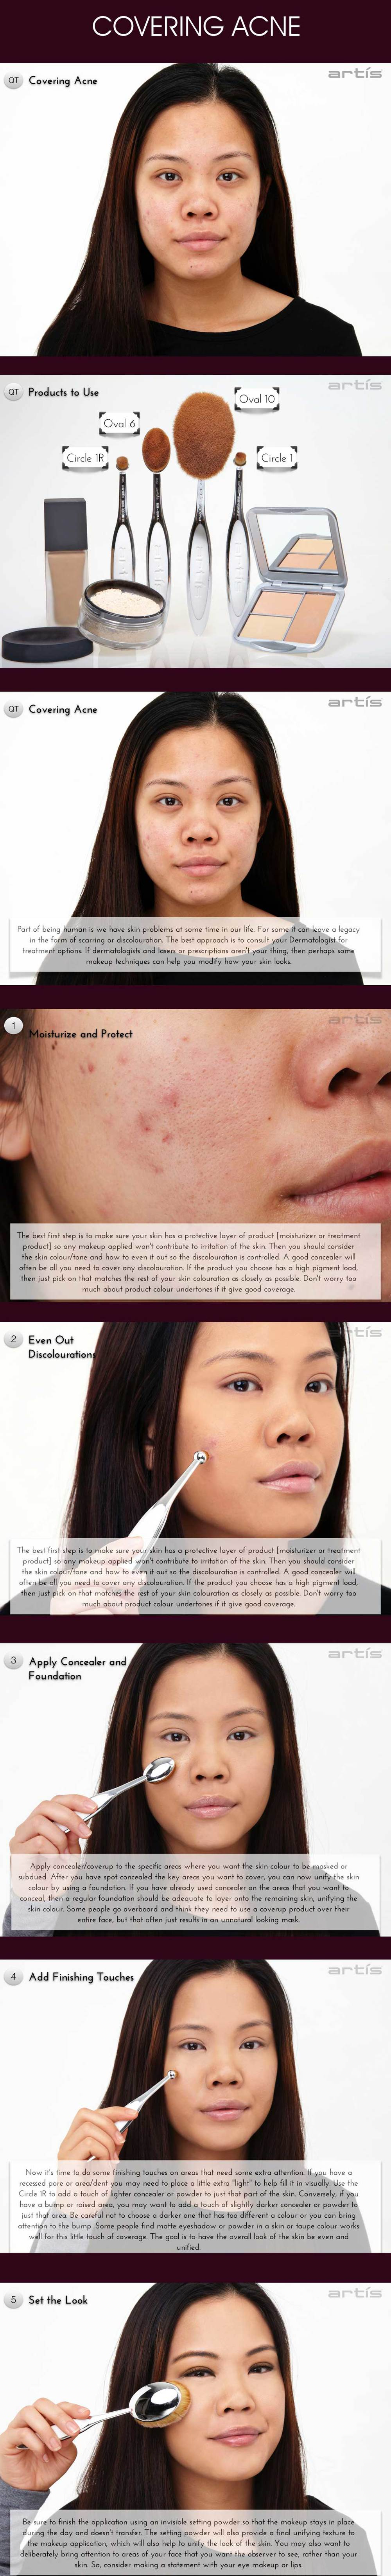 covering-acne-full-sequence.jpg